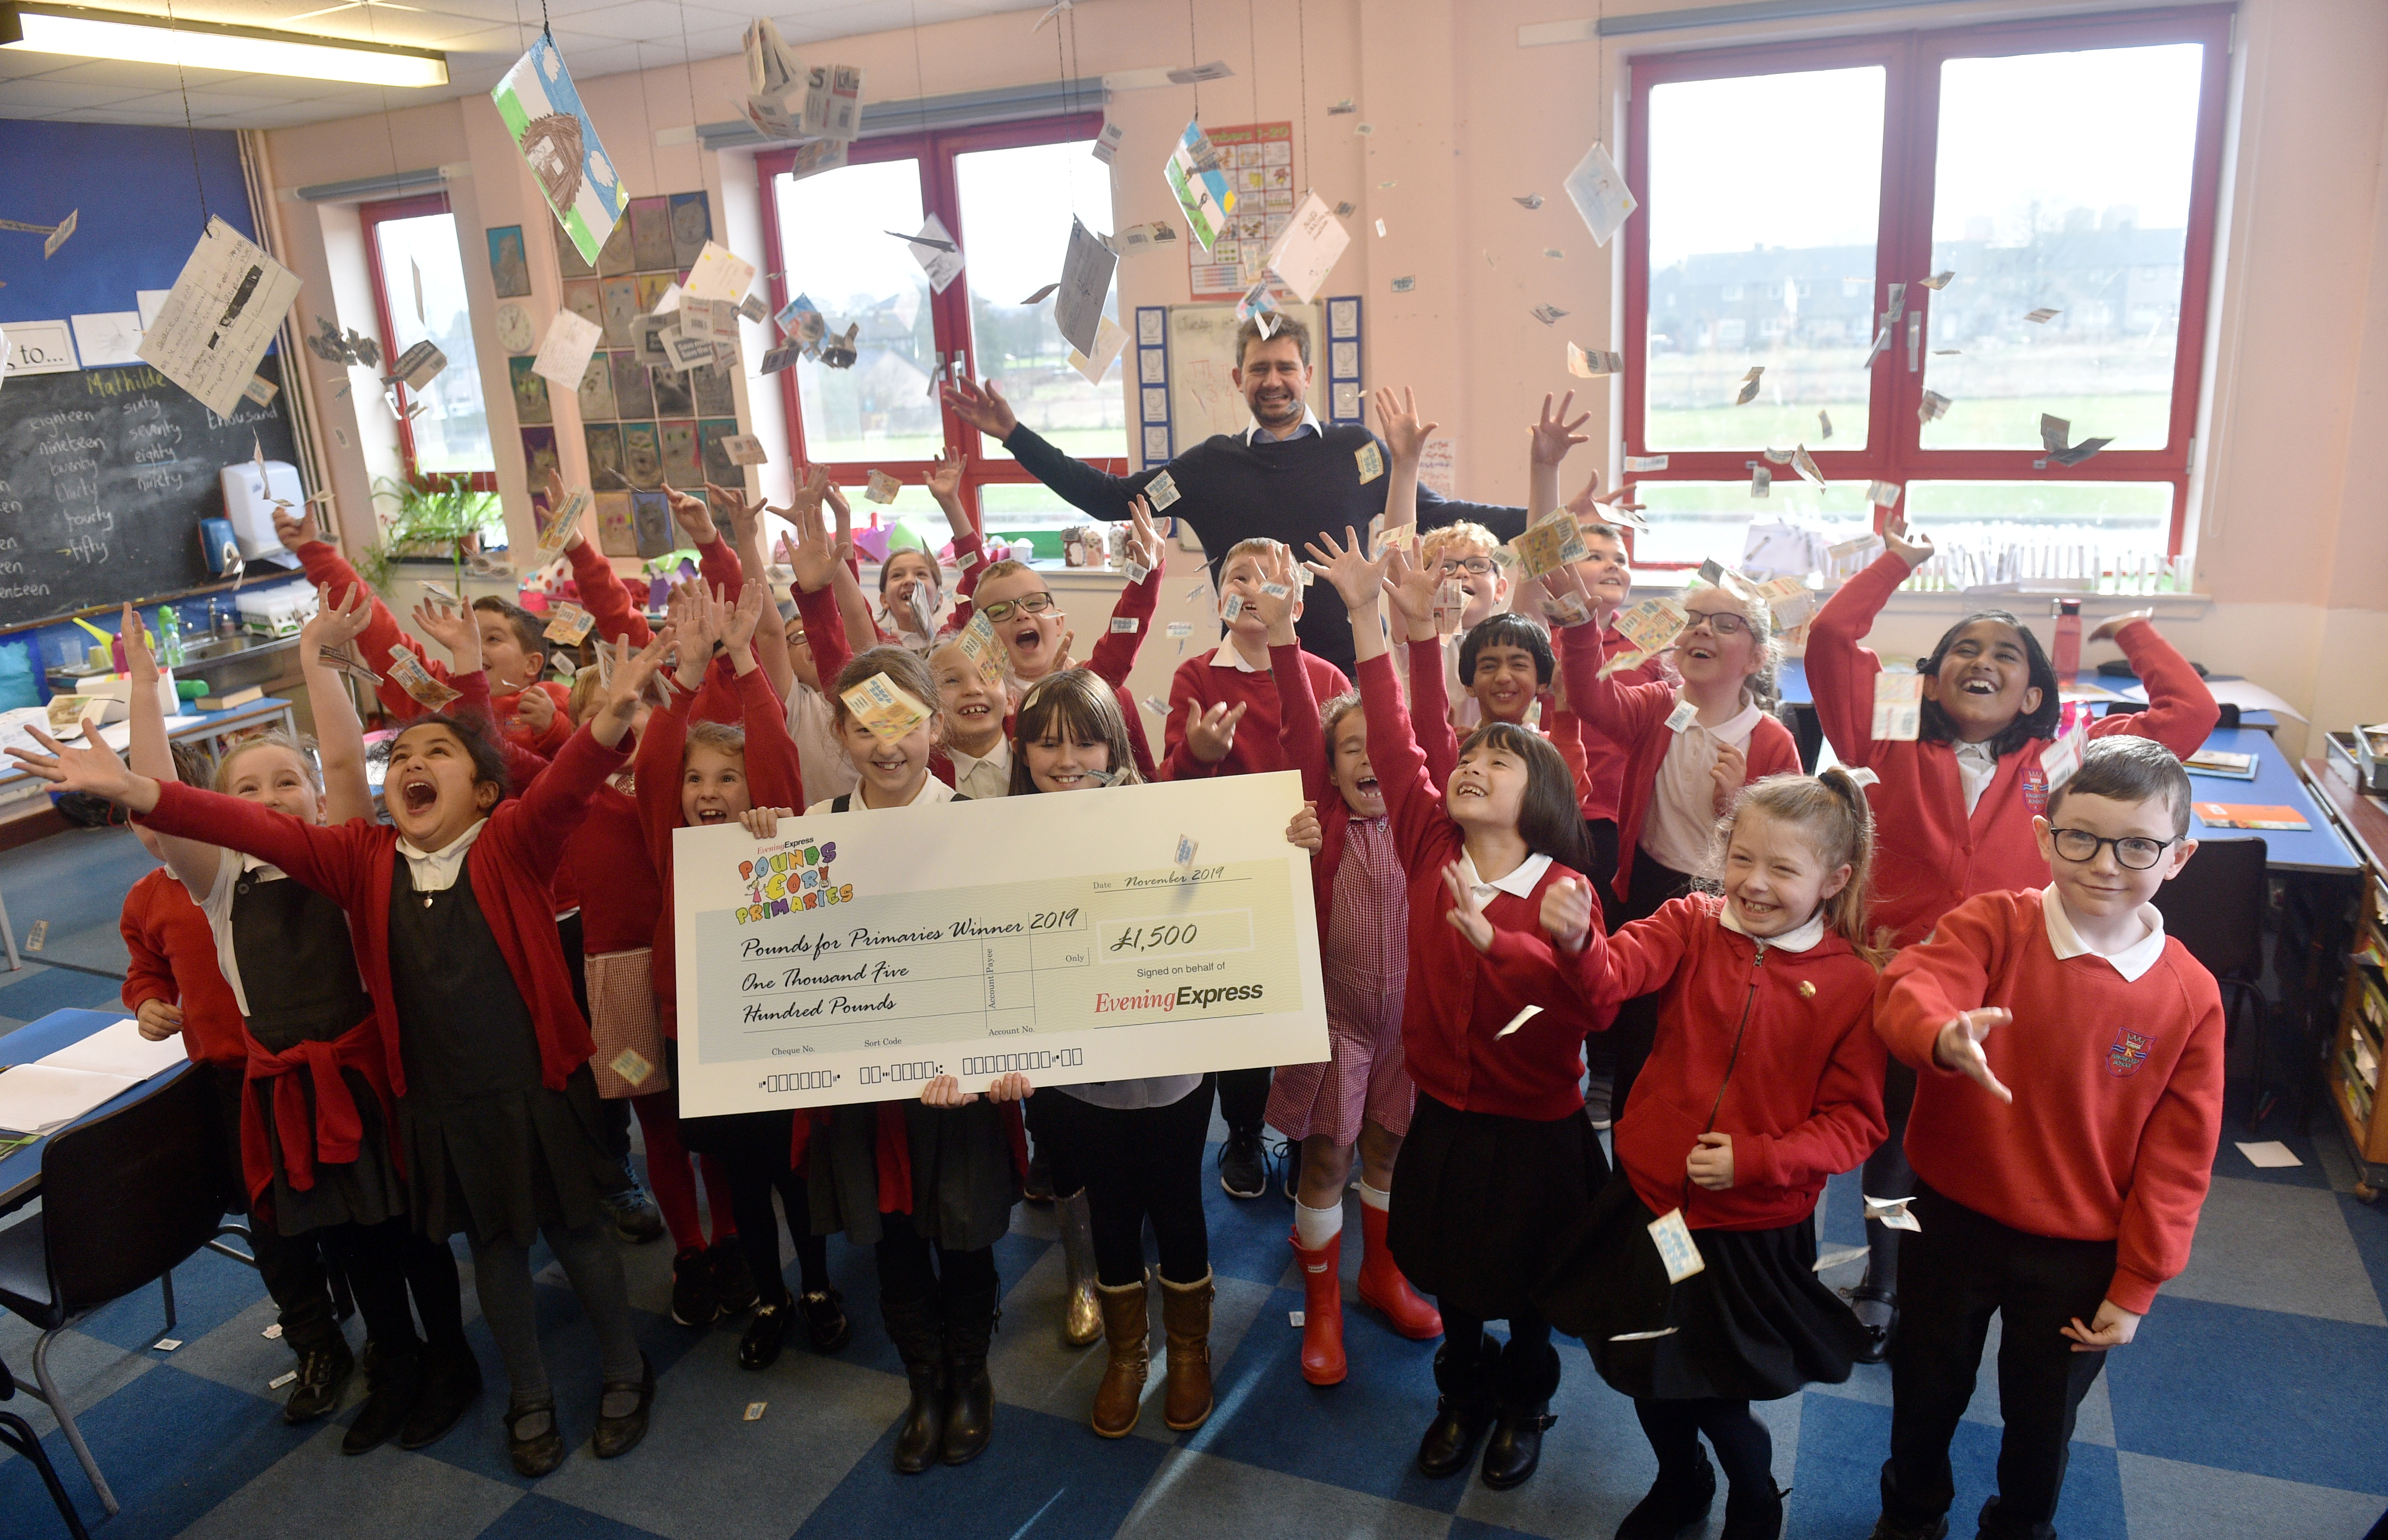 Celebration time for Mr Roach's P4 class at Kingsford Primary School with their cheque from the Evening Express Pounds for Primaries competition. Pictures by Darrell Benns